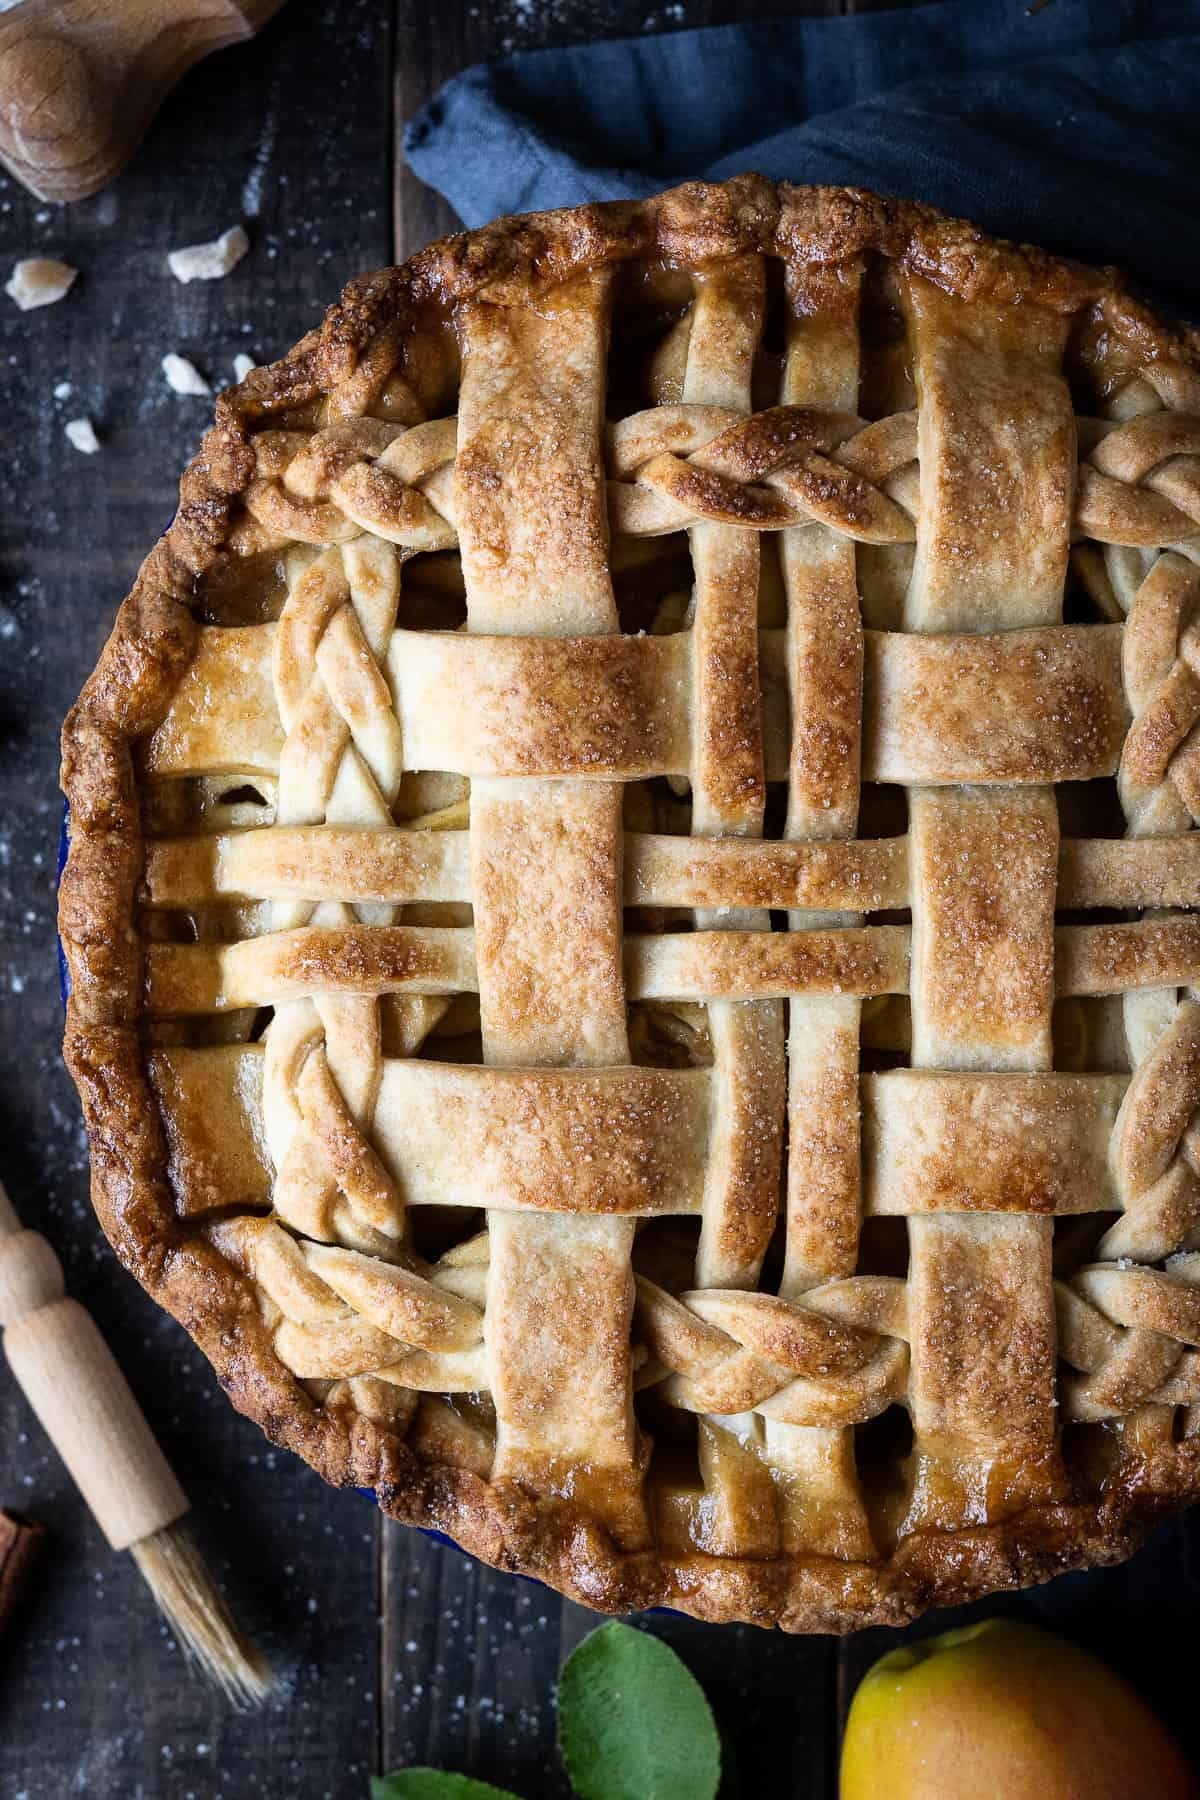 Close up of the lattice on top of the pie.